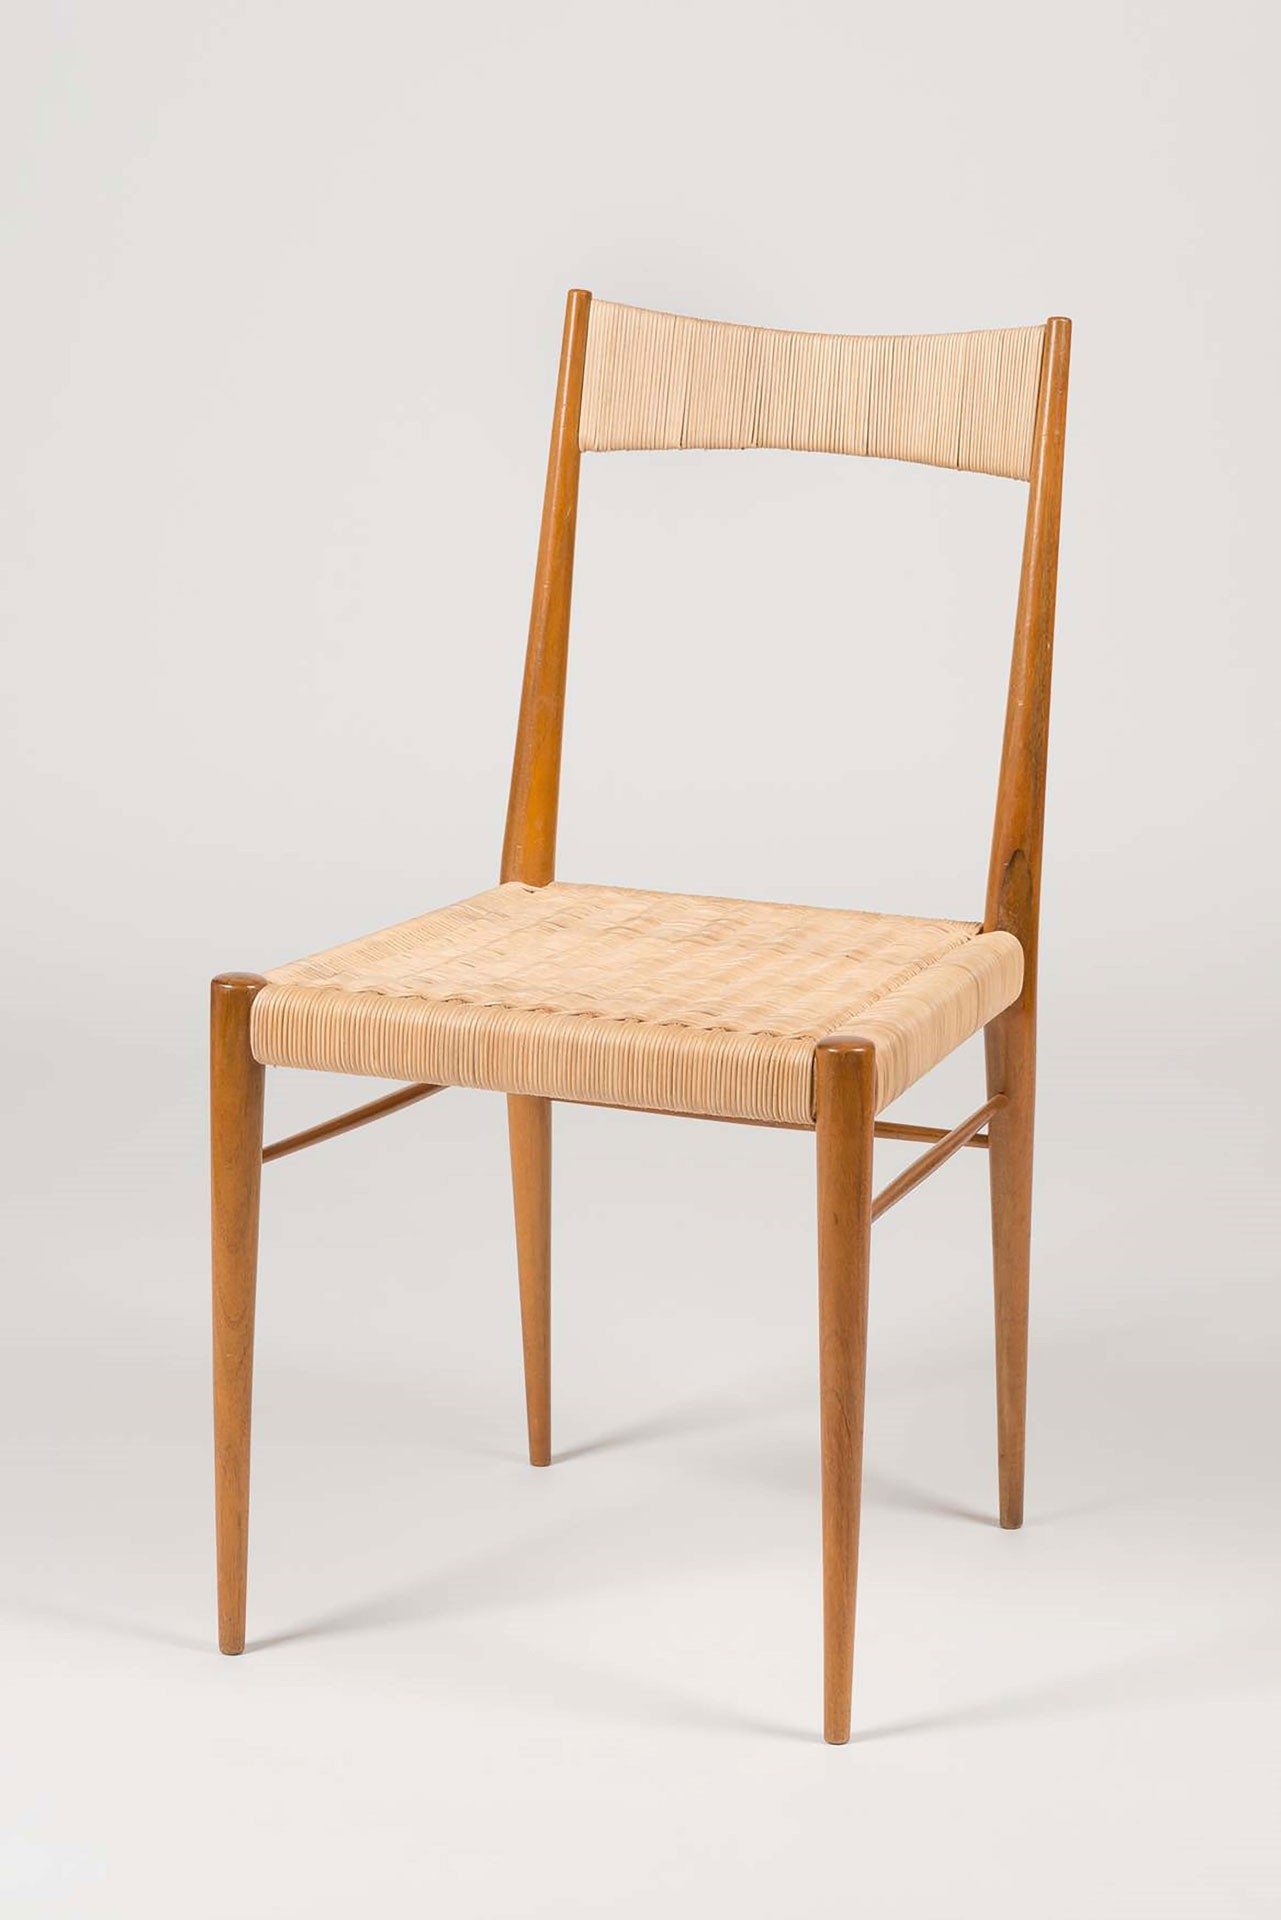 <BODY>Anna-Lülja Praun, Chair <em>F.L.P.</em>, Vienna, 1955<br />Wood, painted; wicker<br />© MAK/Nathan Murrell</BODY>